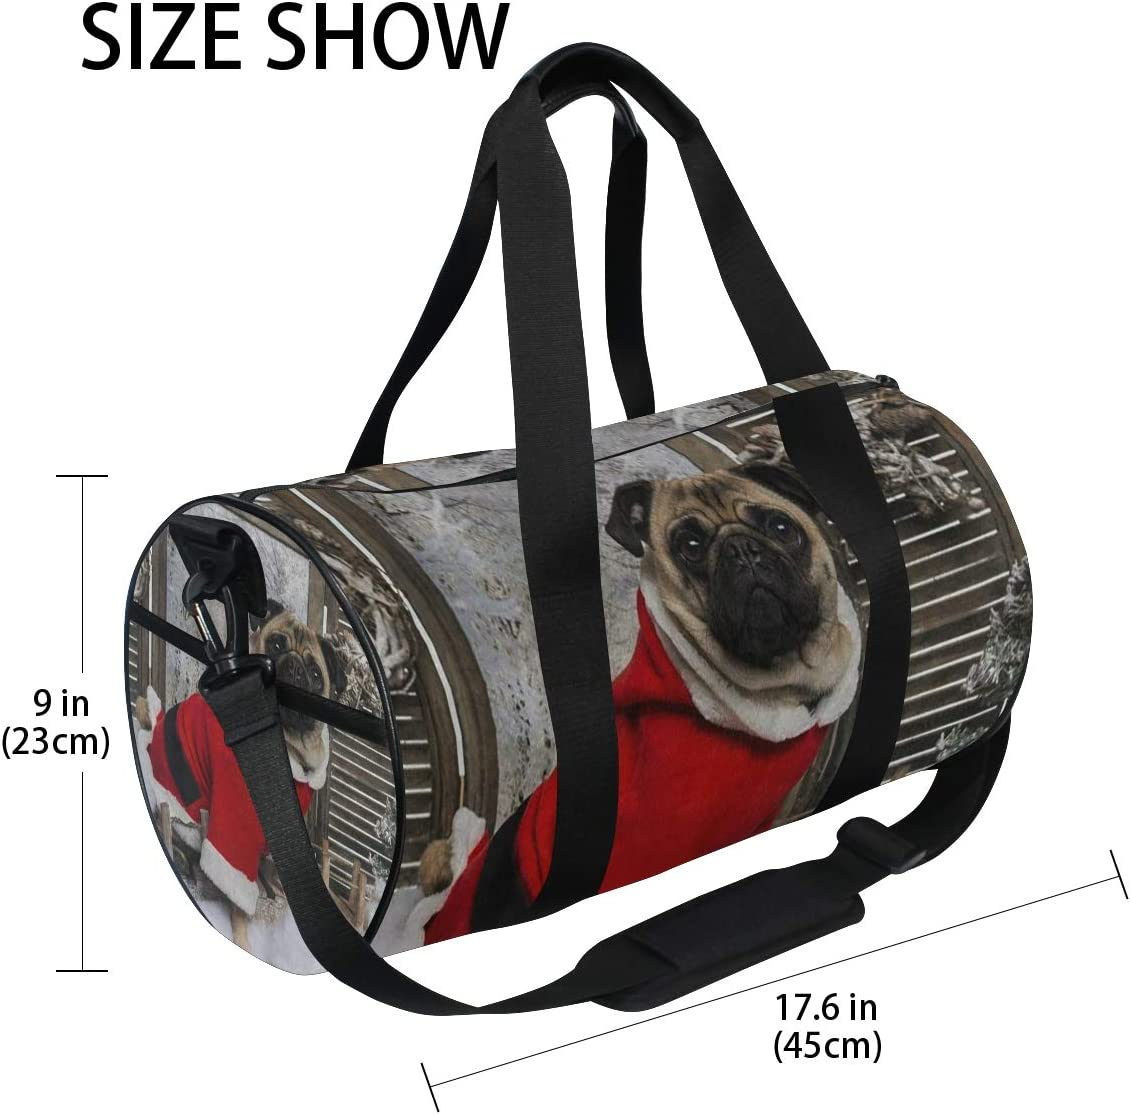 SLHFPX Sports Bag Underwater World Coral Reef Dolphin Mens Duffle Handbag Travel Table Tennis Bags Gym bag